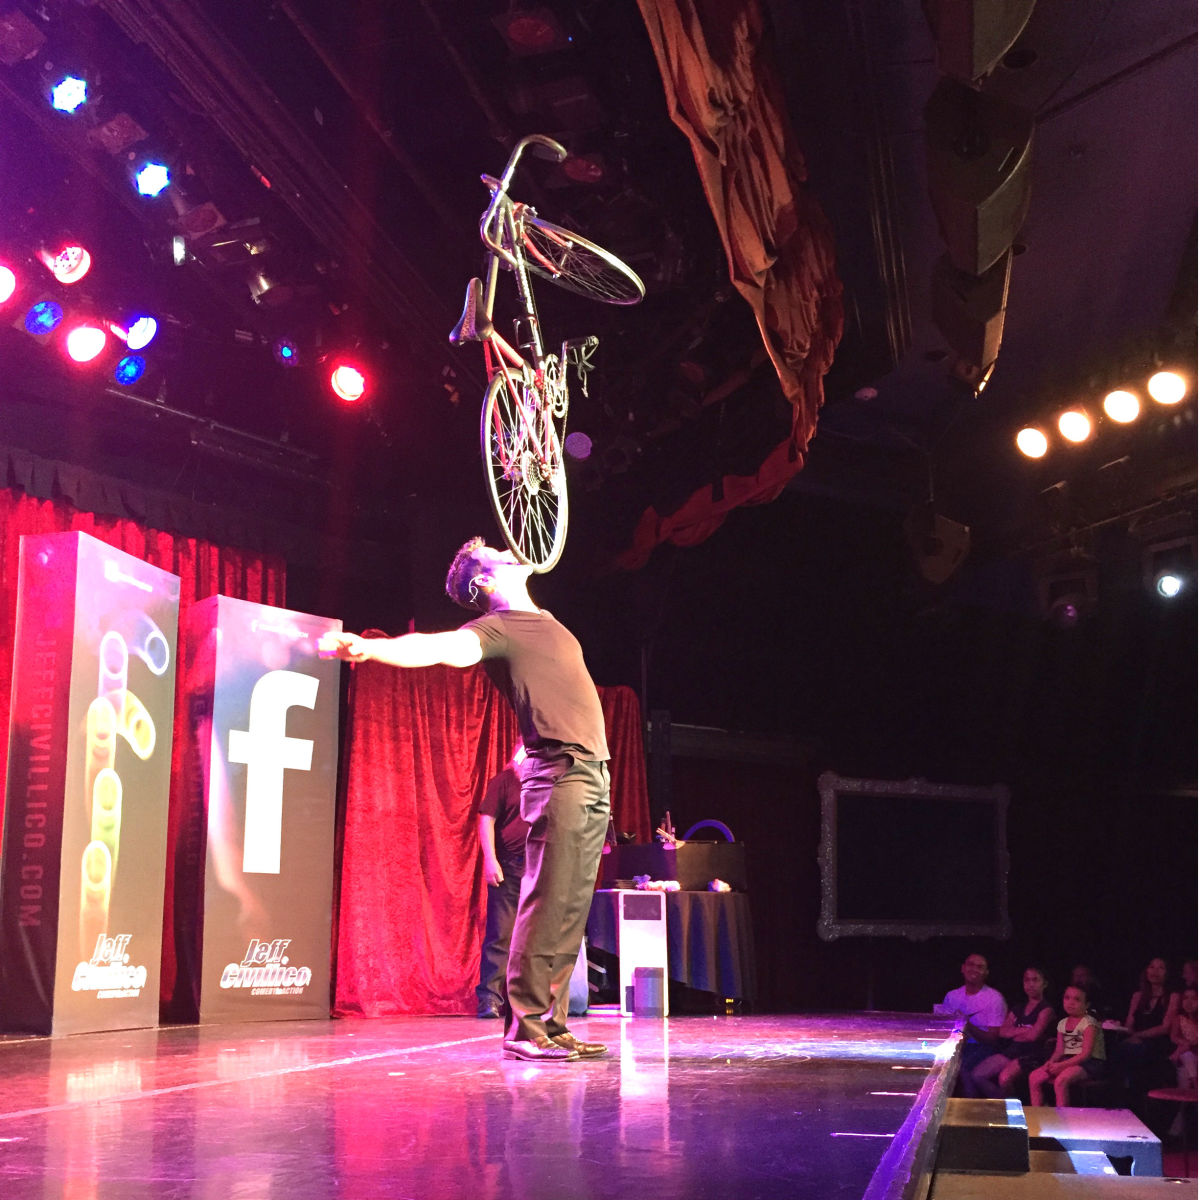 Jeff Civillico balancing a bike on his chin (Photo: Brandi Sjostrom)